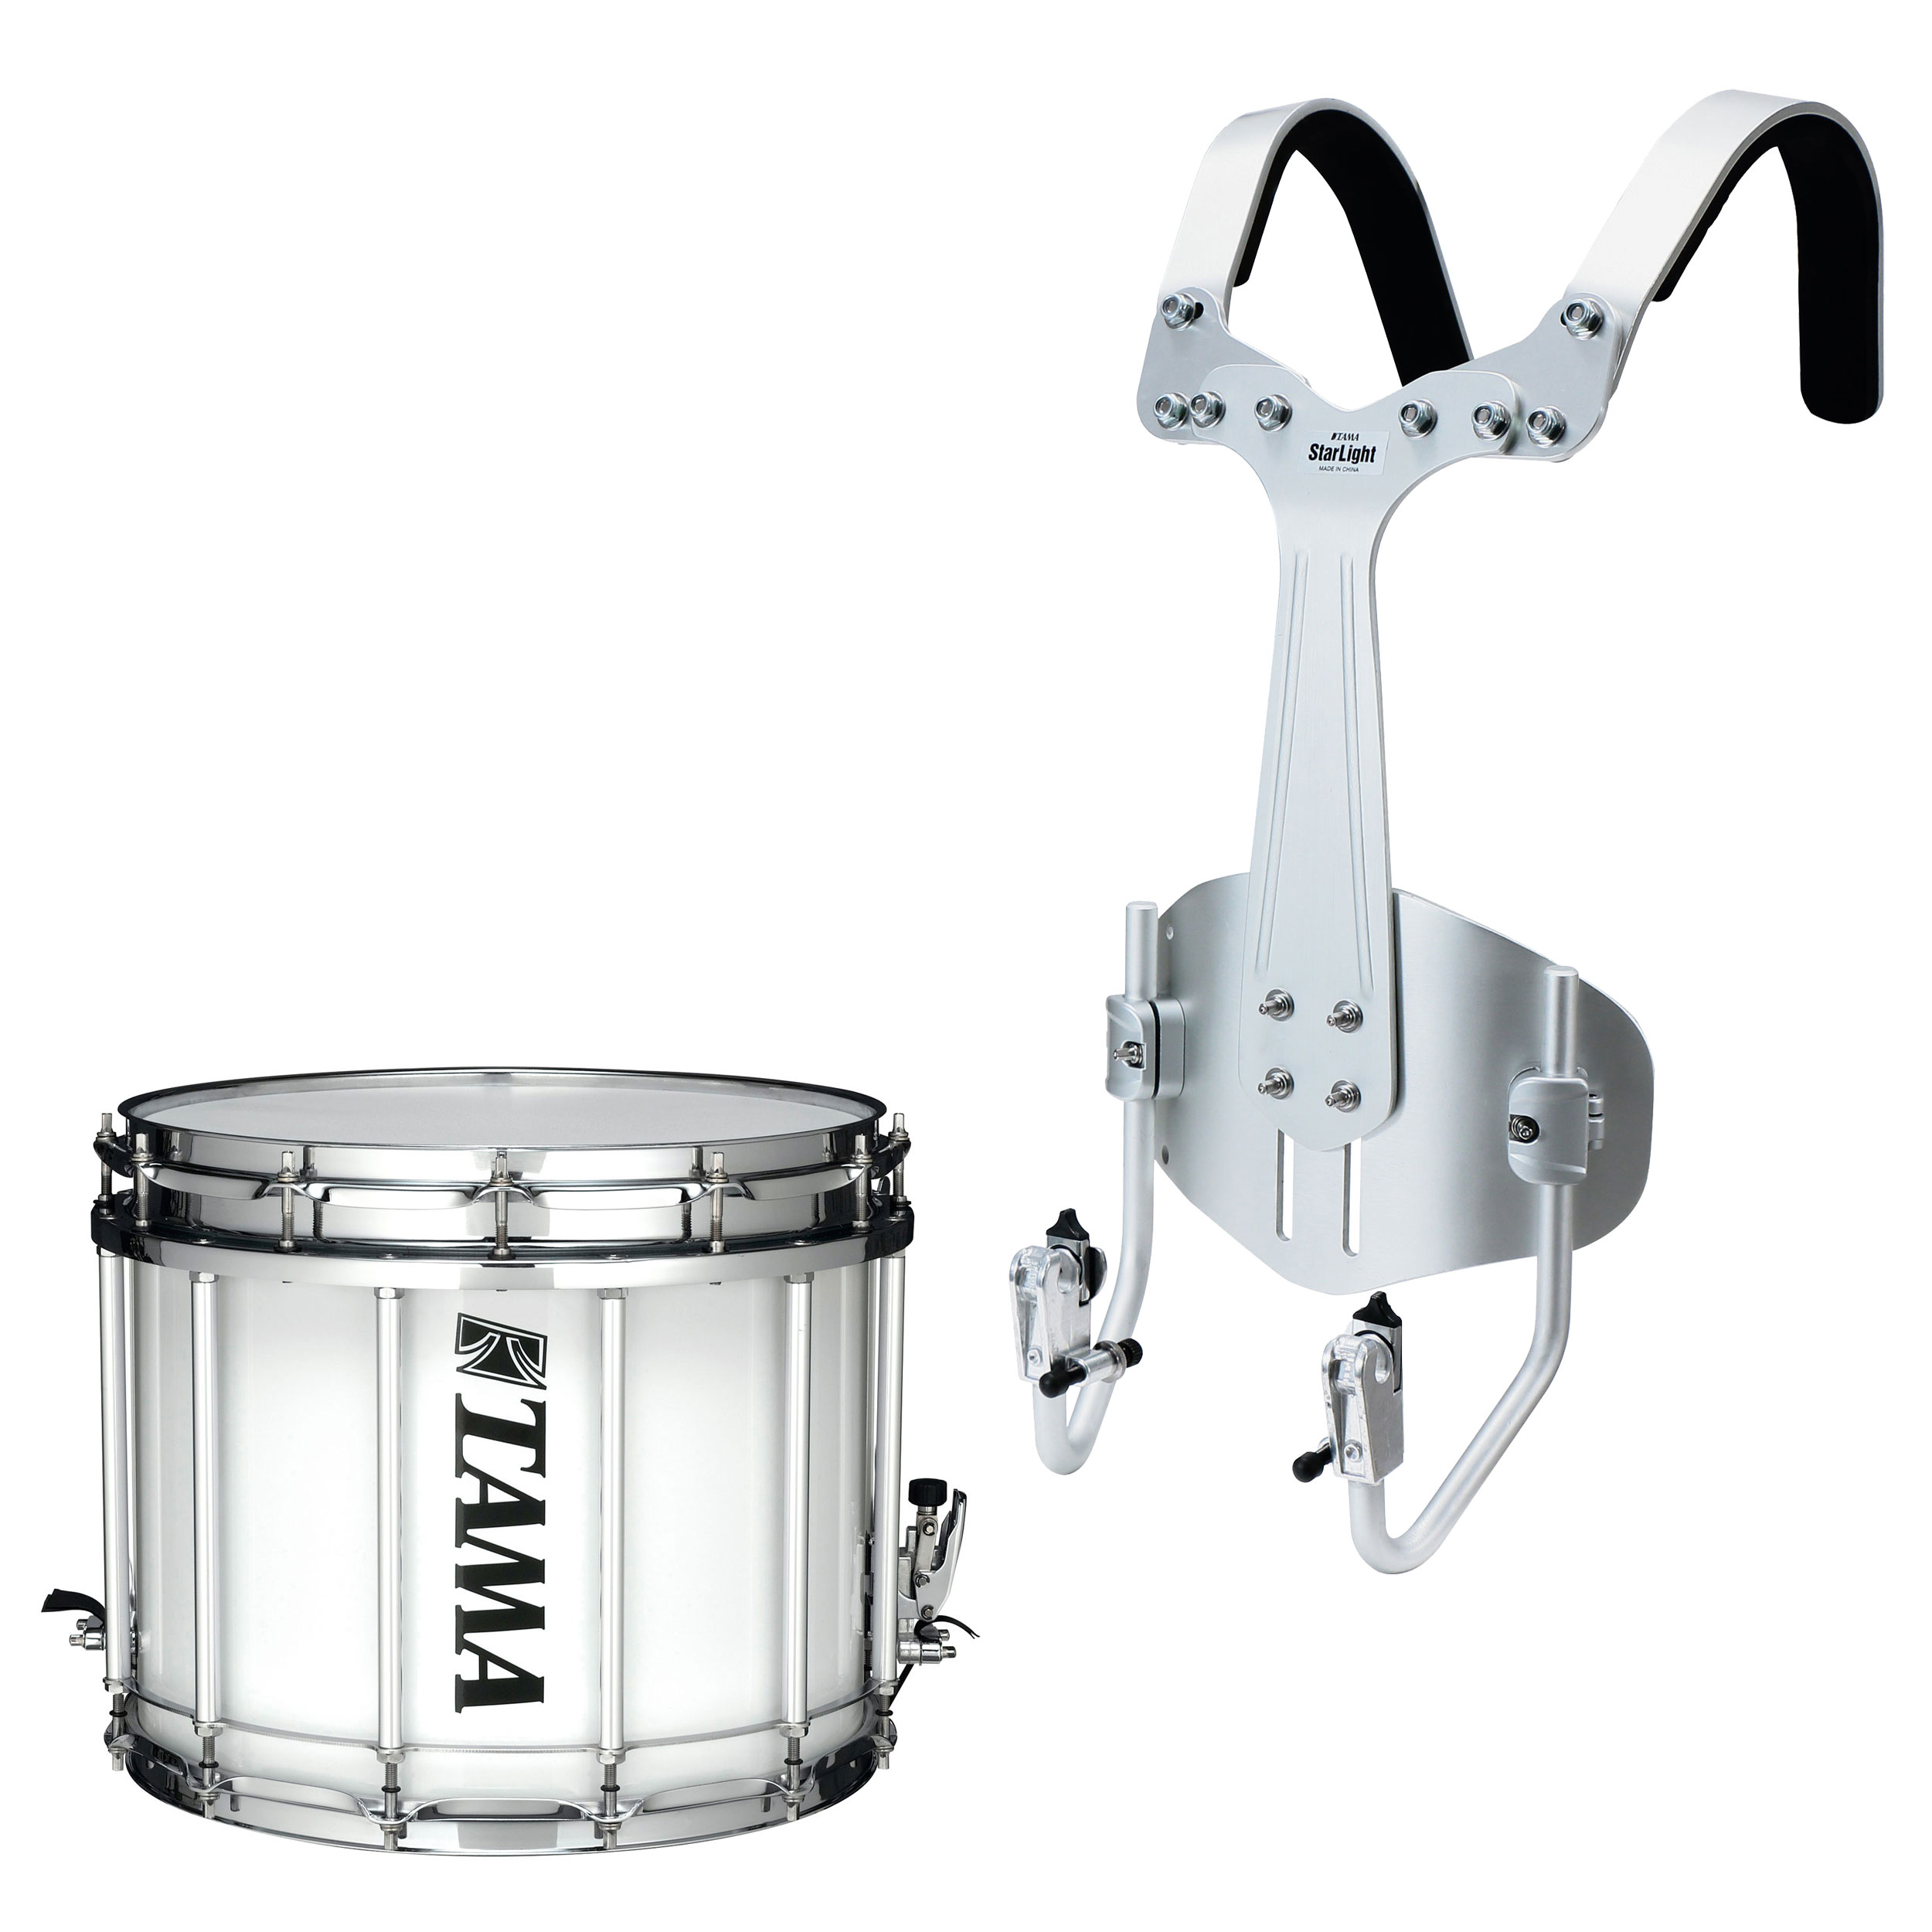 "Tama 12"" (Deep) x 14"" (Diameter) StarLight Marching Snare Drum in Sugar White Wrap with Carrier"